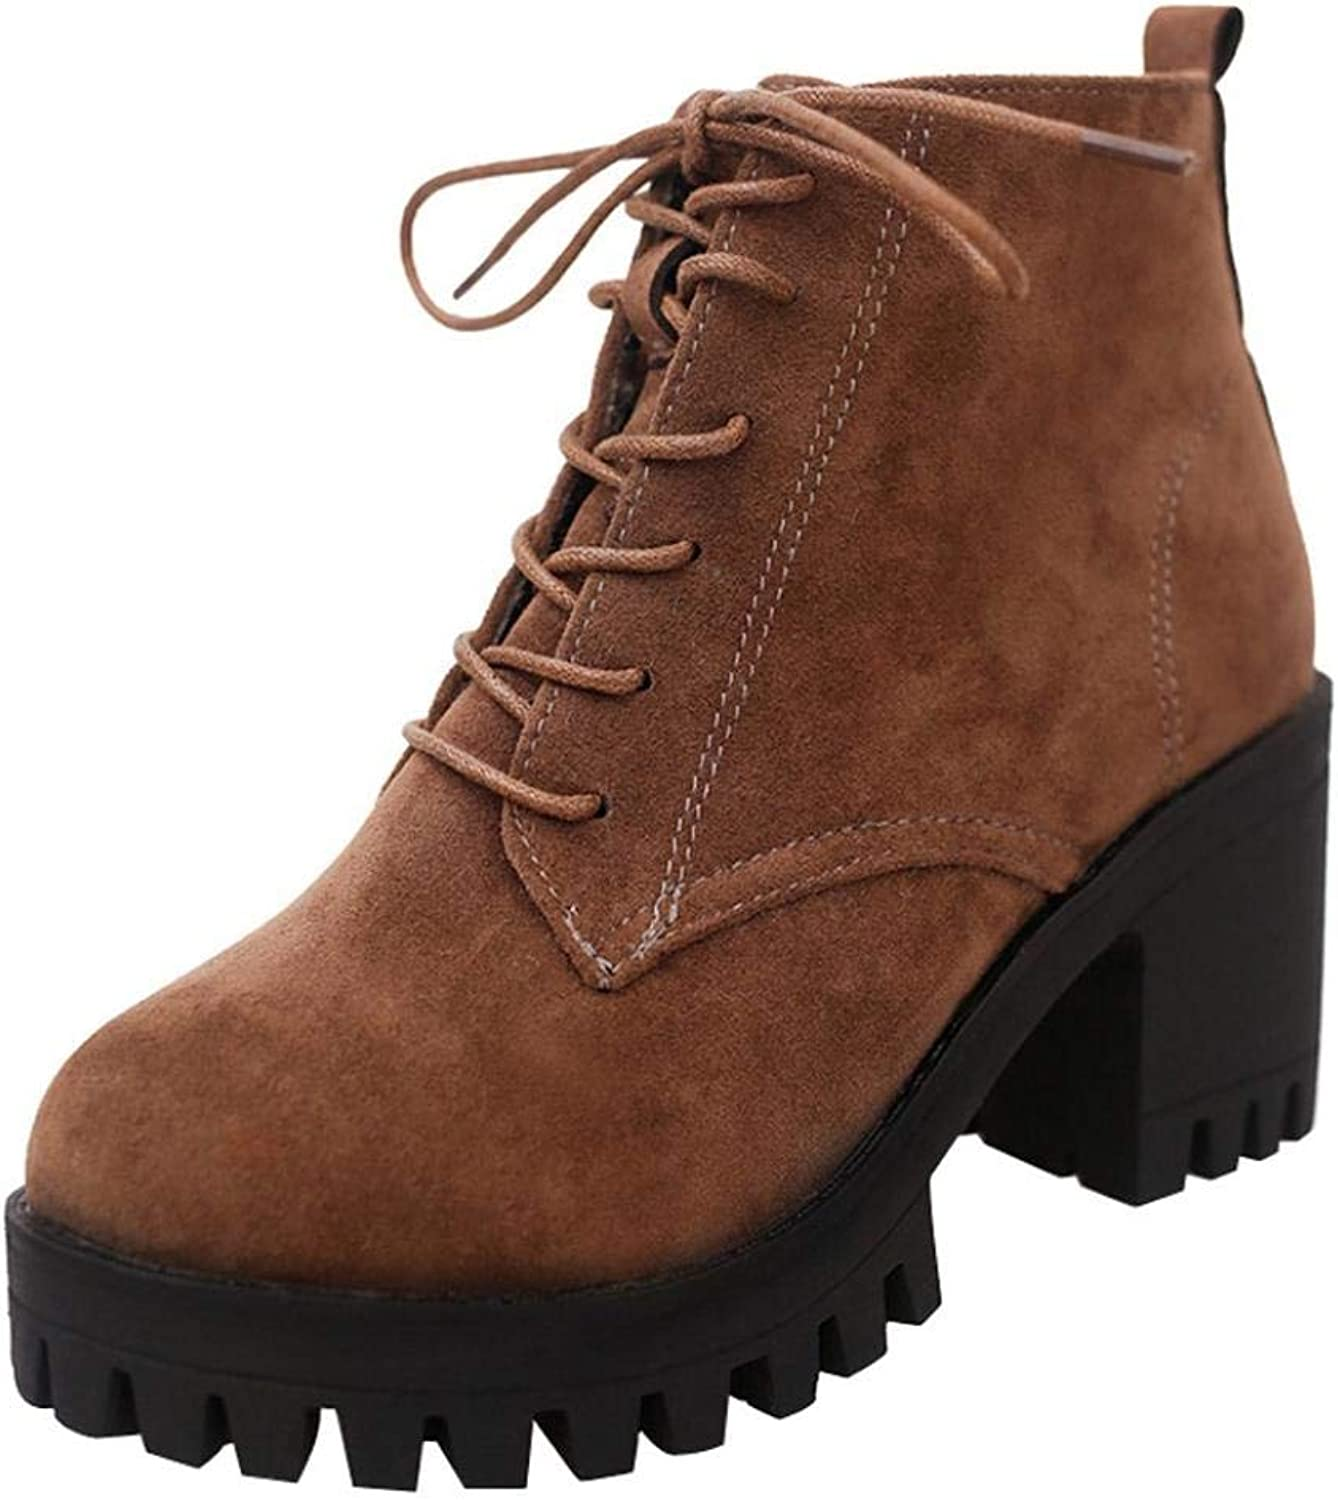 GouuoHi Womens Boots Fashion Women Round Toe Lace-up Non-Slip Leather Boots Casual Martin shoes Leisure Elegant Soft Wild Tight Super Quality for Womens